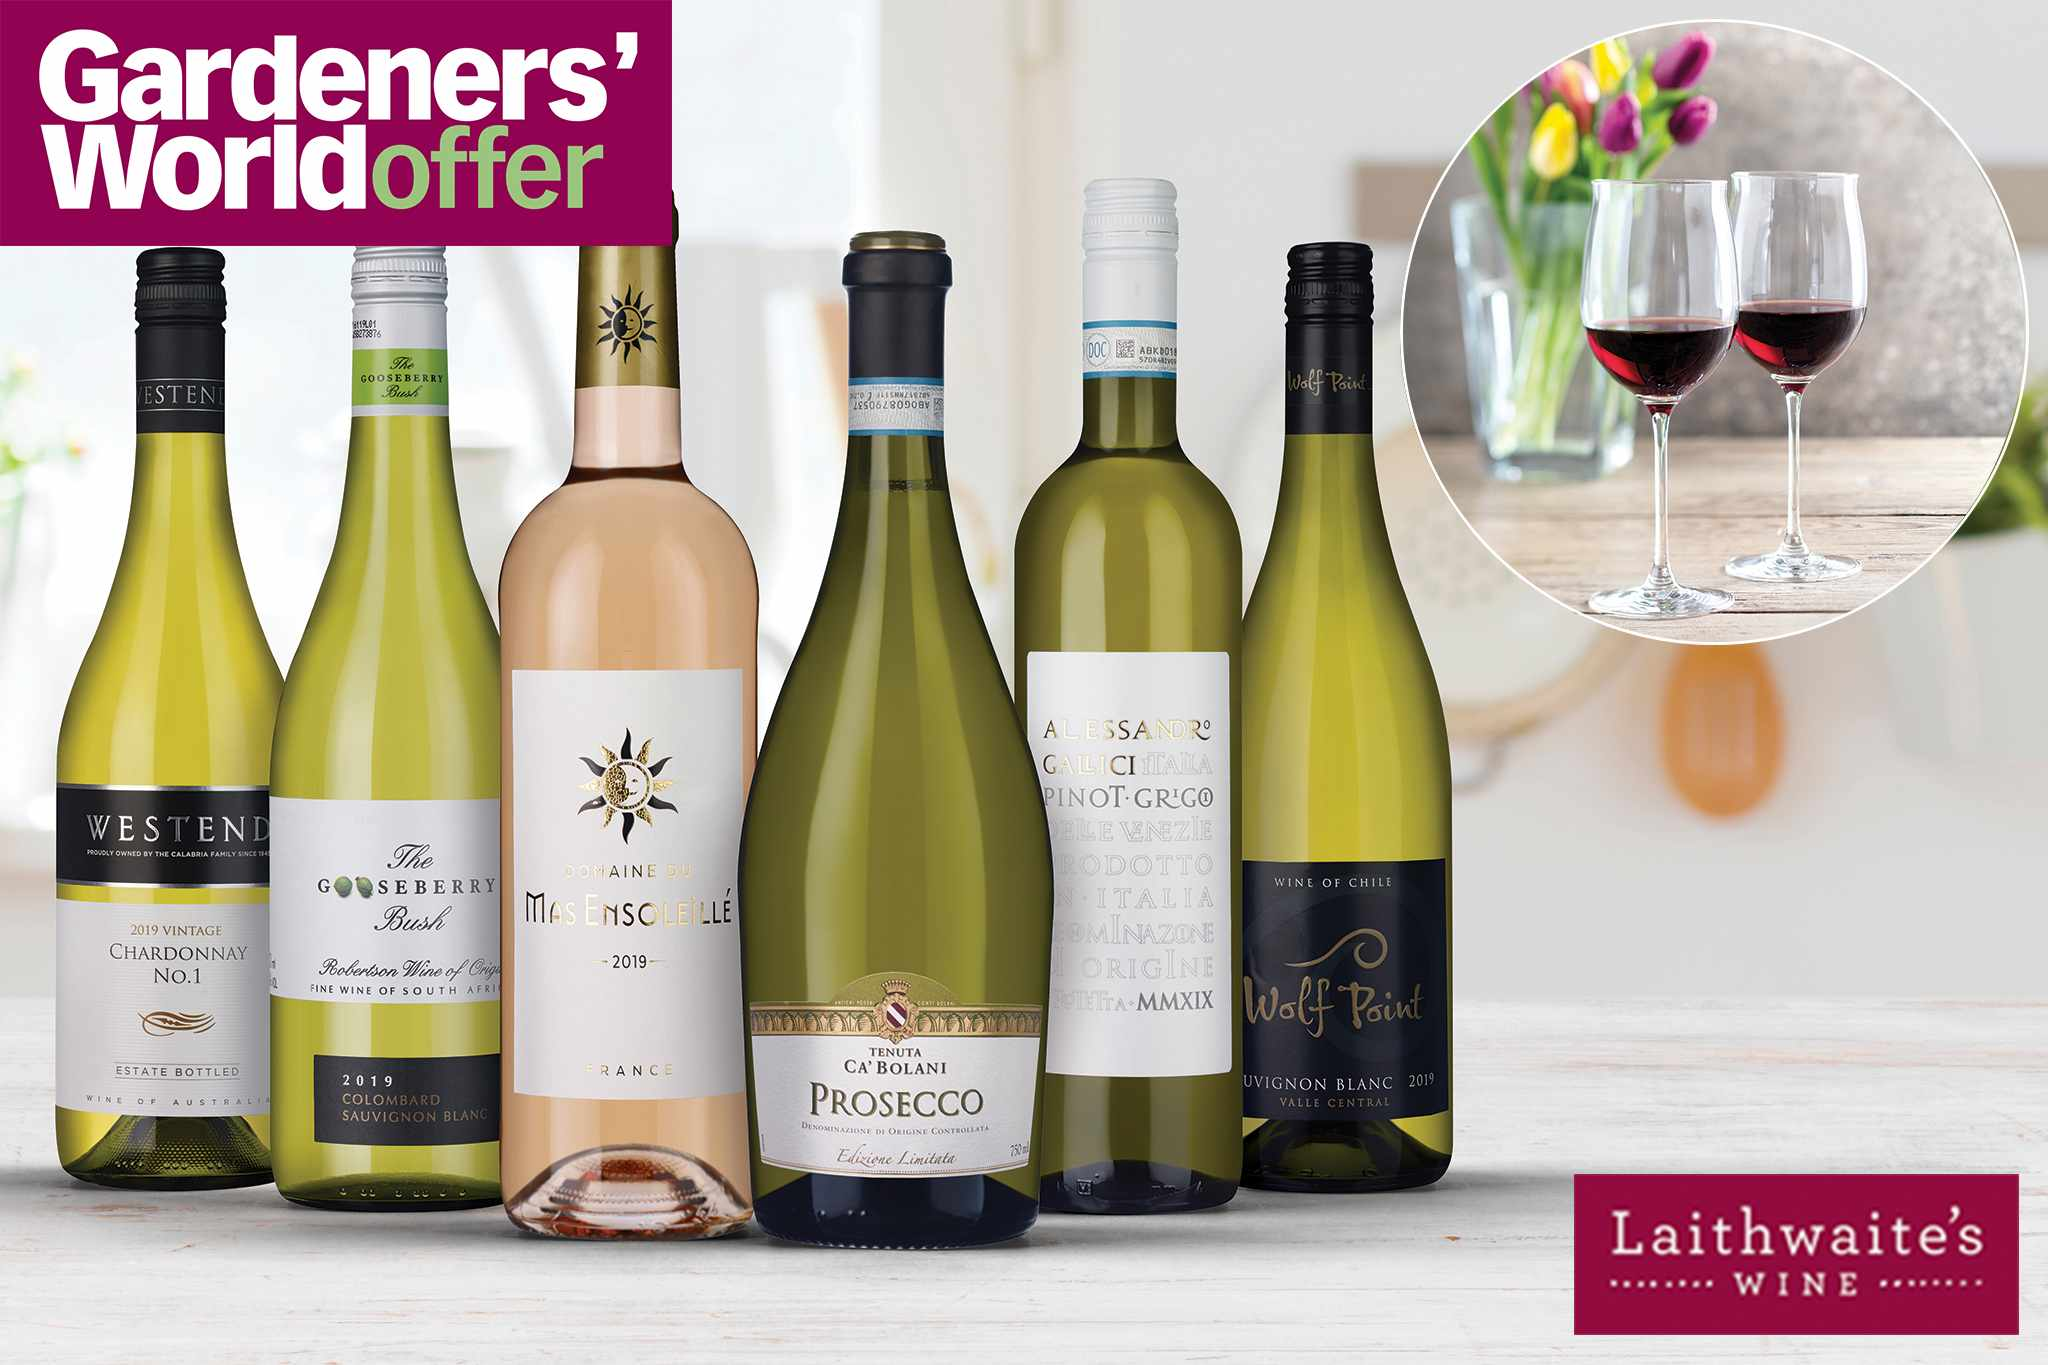 Save on summer wine, plus free wine glasses and delivery